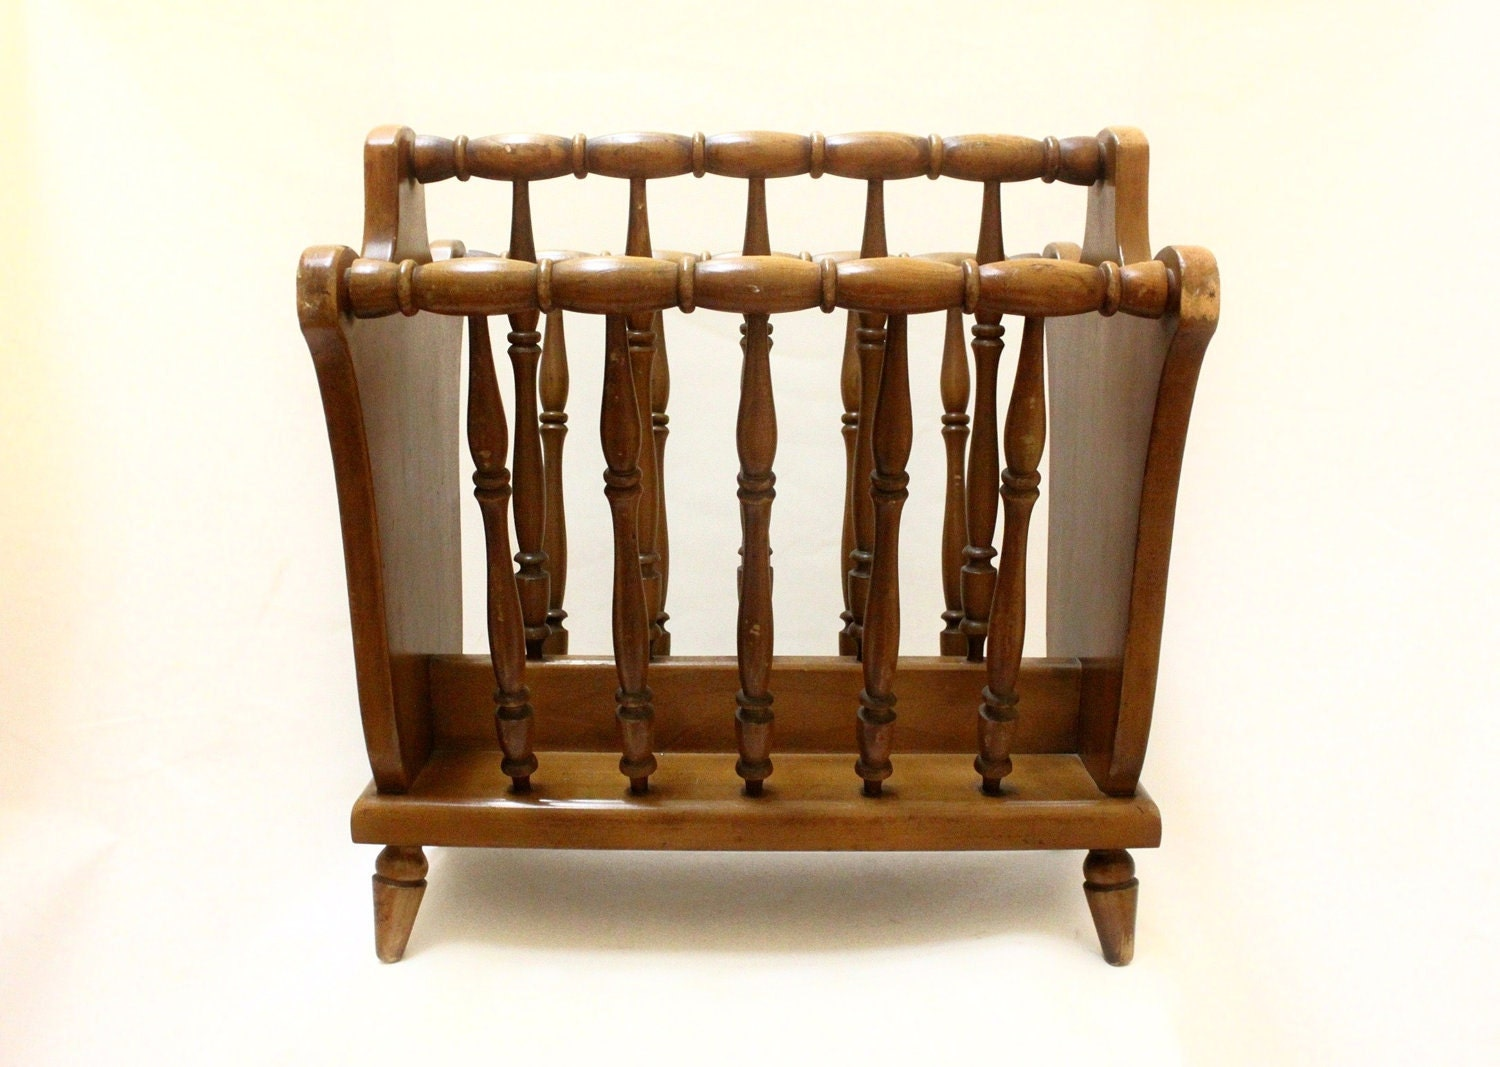 Beautiful antique wooden magazine rack stand holder by